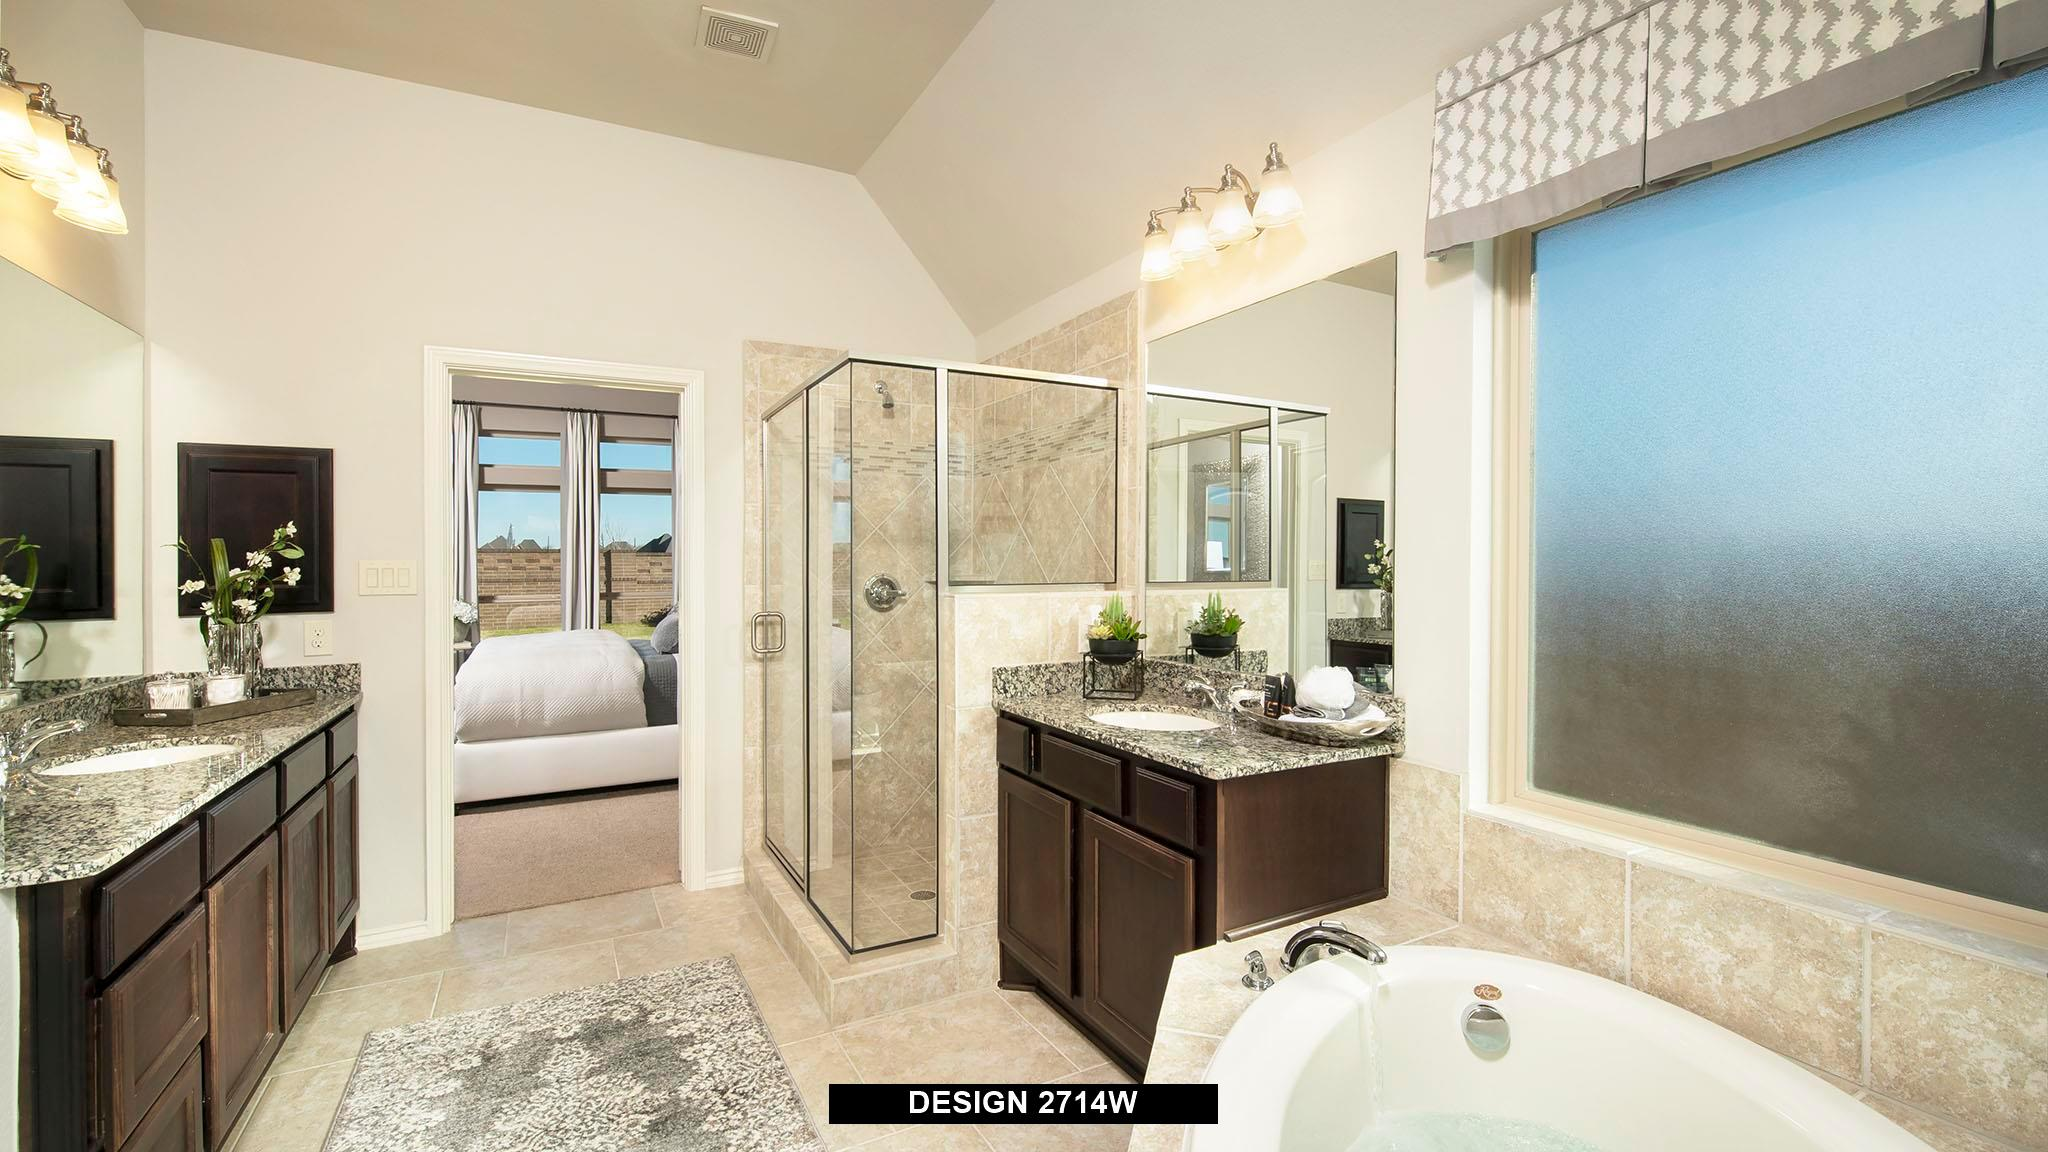 Bathroom featured in the 2714W By Perry Homes in Houston, TX